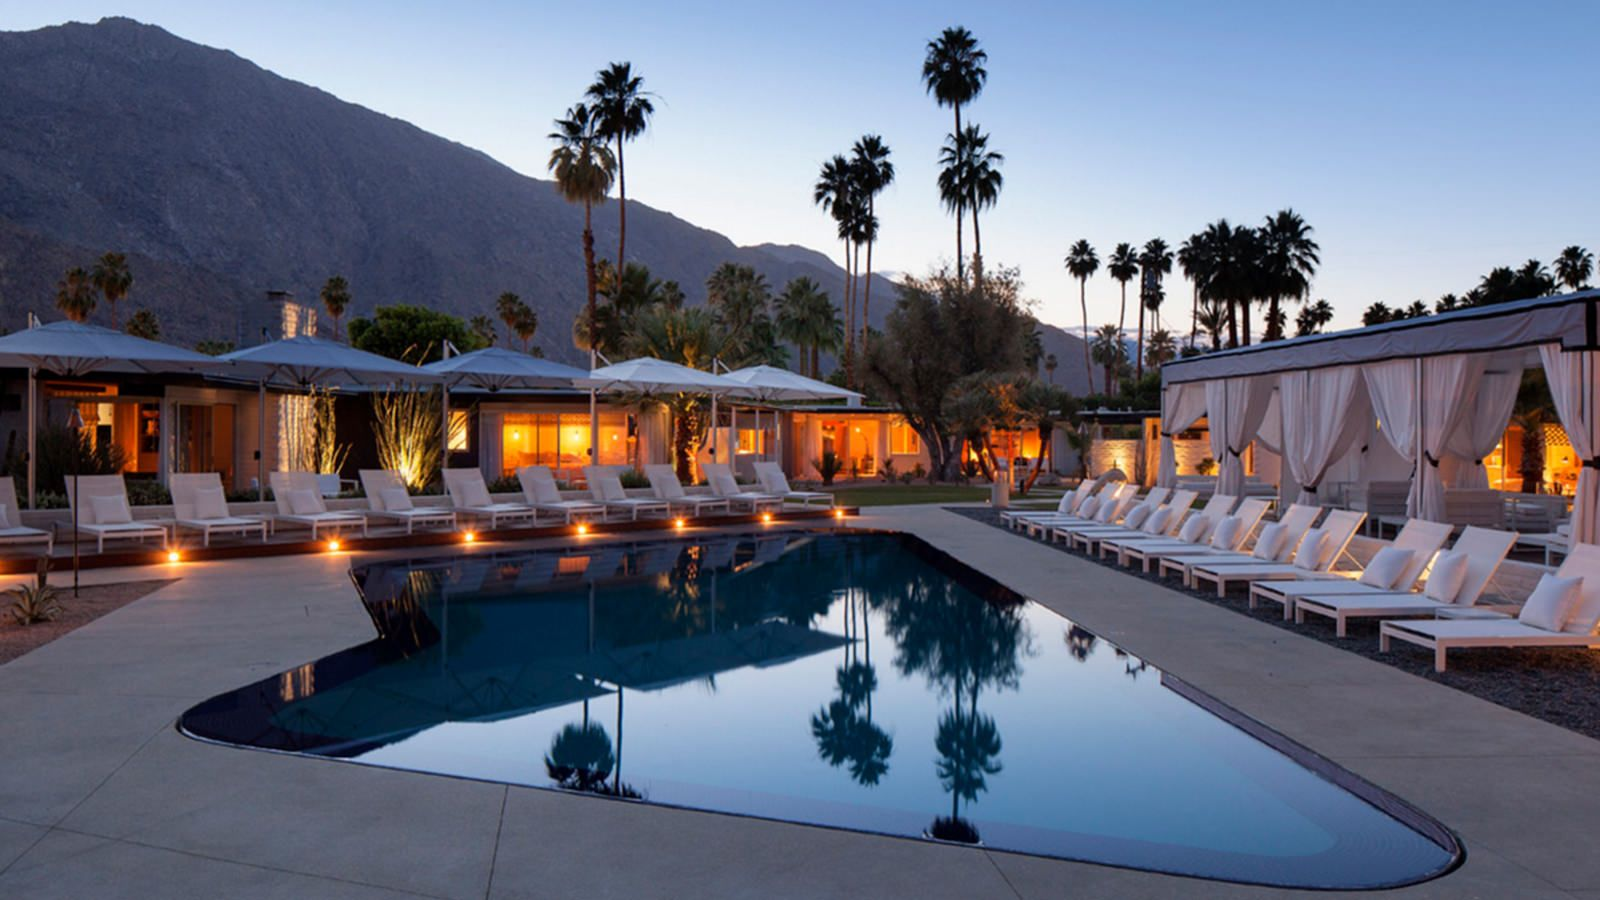 25-Best-Hotels-Cinematic-Lead-Full-2